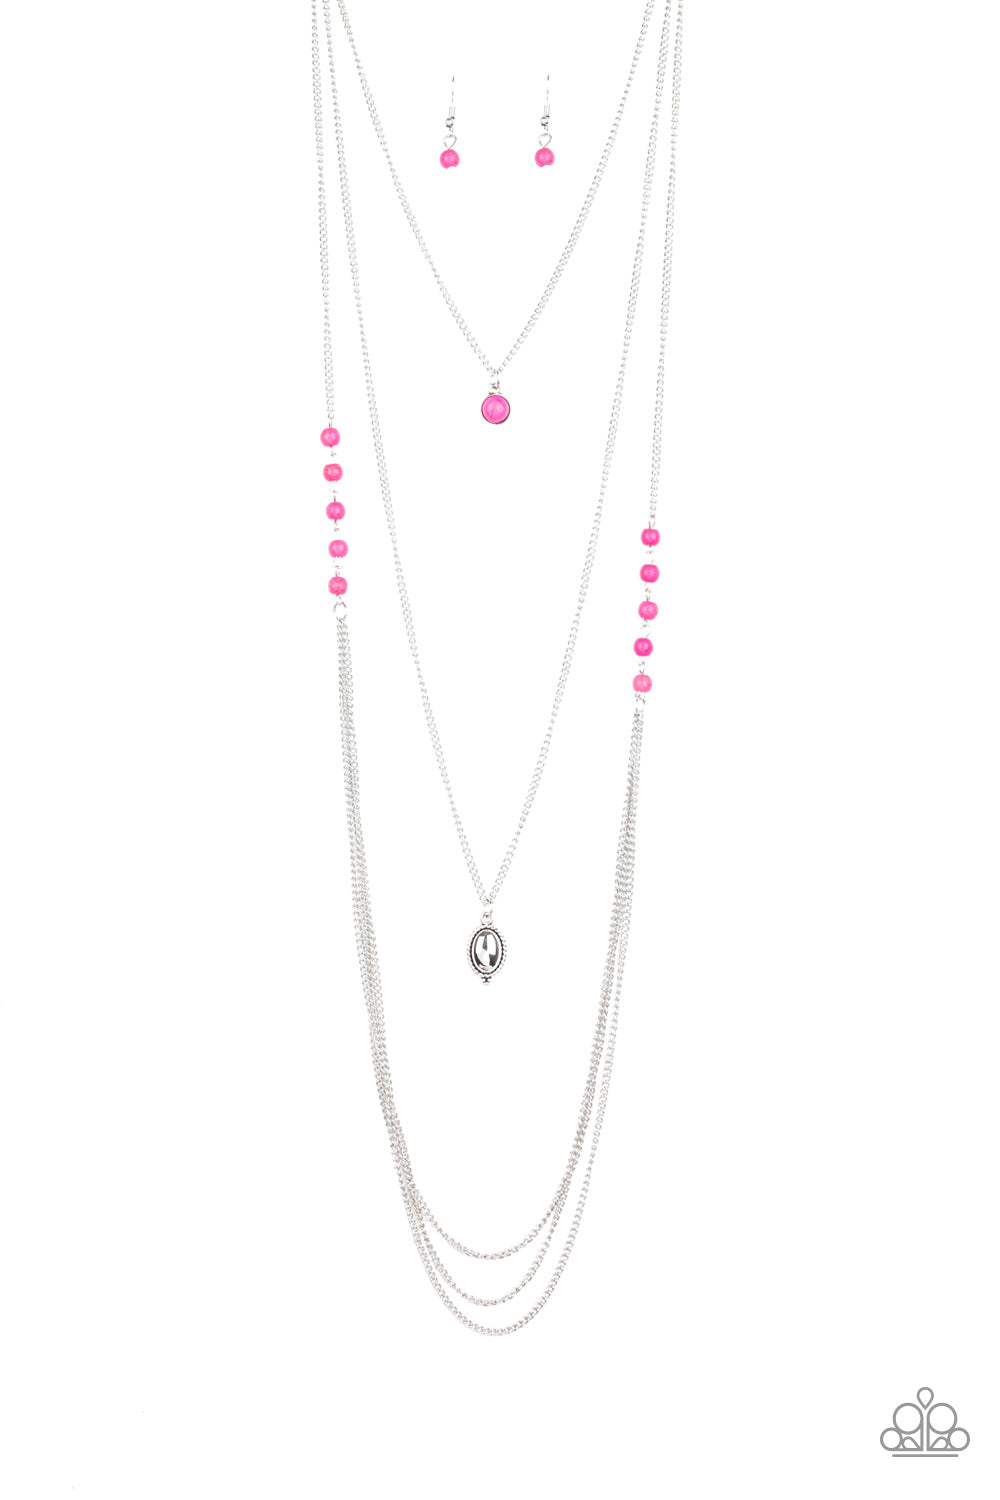 The Pony Express Pink Necklace